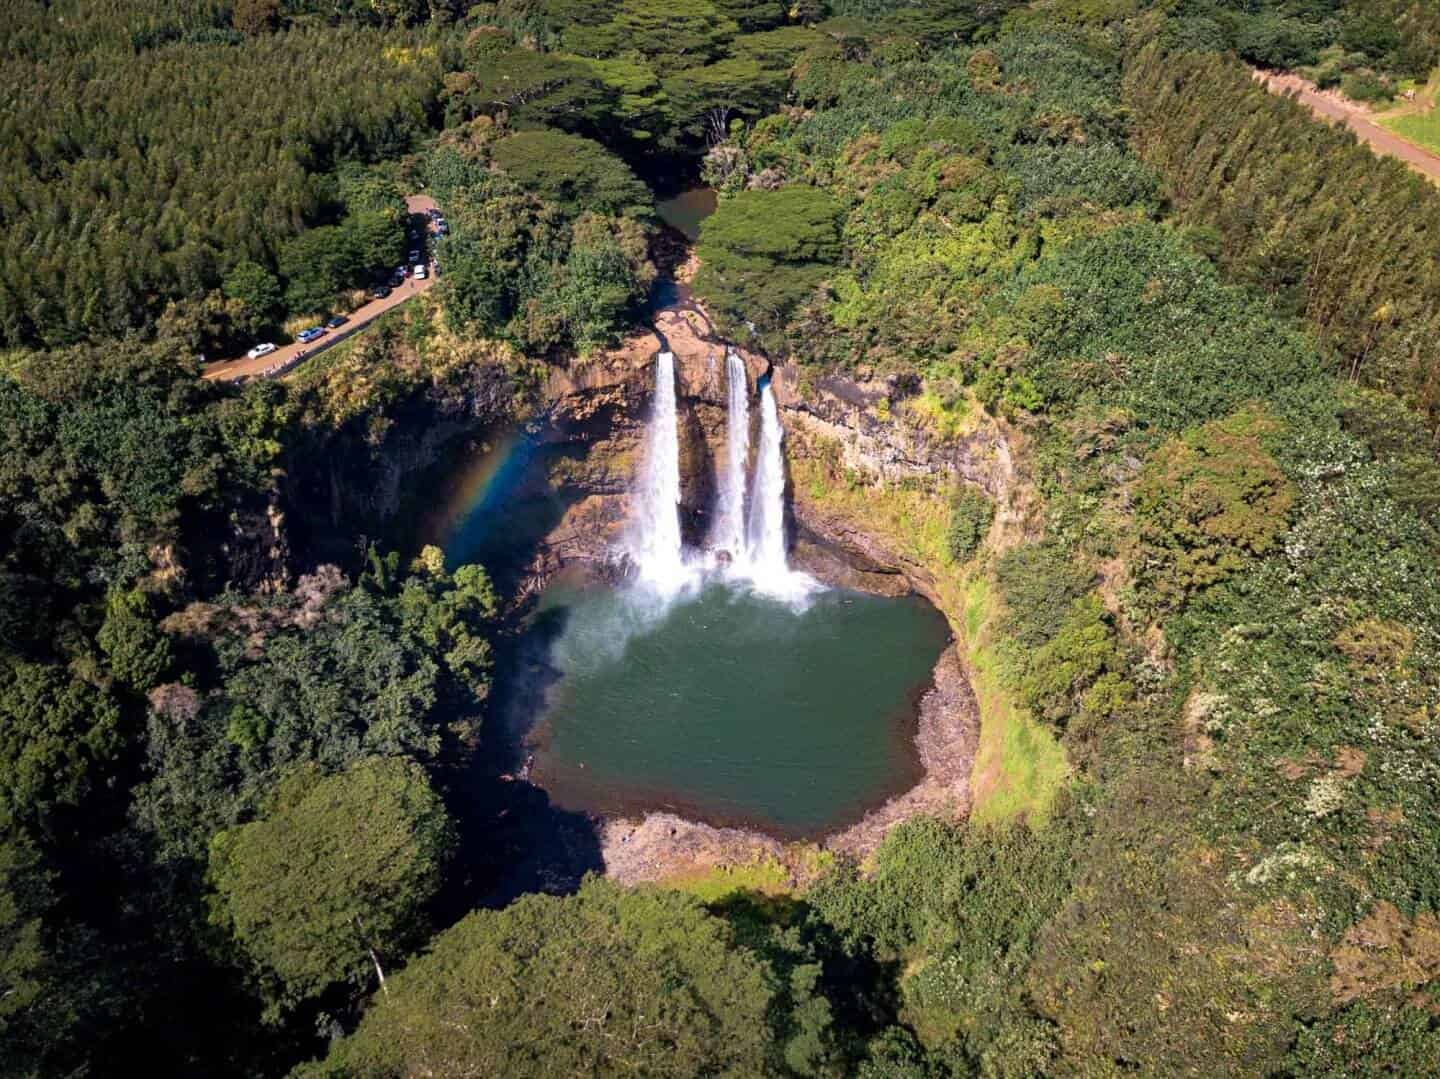 A hole in the jungle reveals the beautiful Wailua Falls.